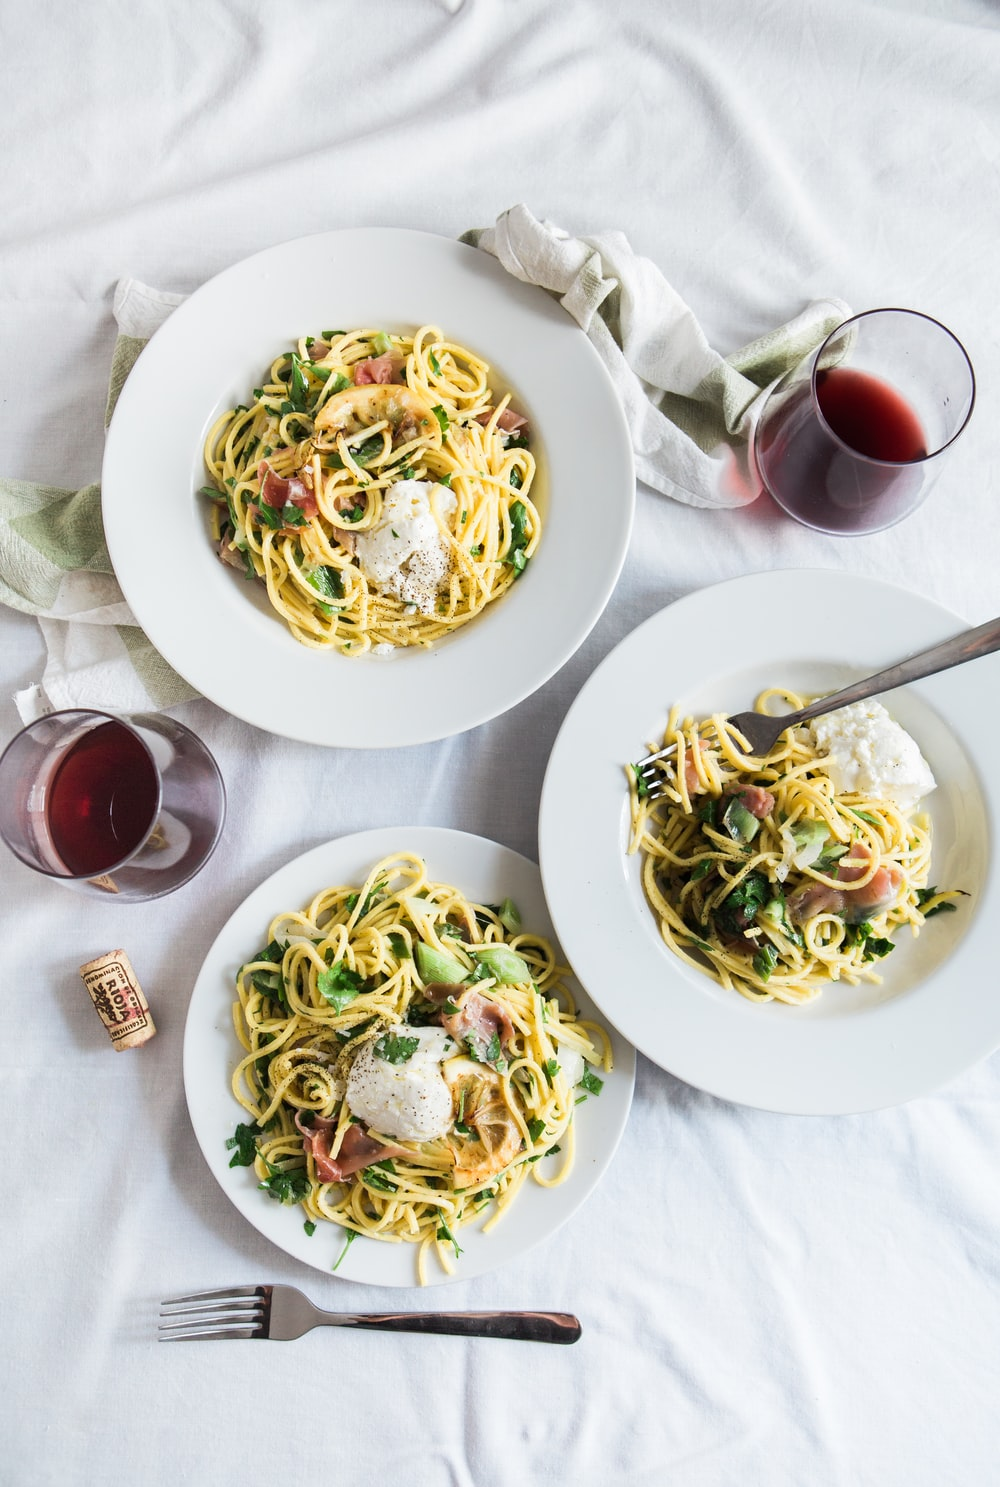 An overhead shot of two glasses of red wine next to three plates of pasta with pancetta on a white tablecloth